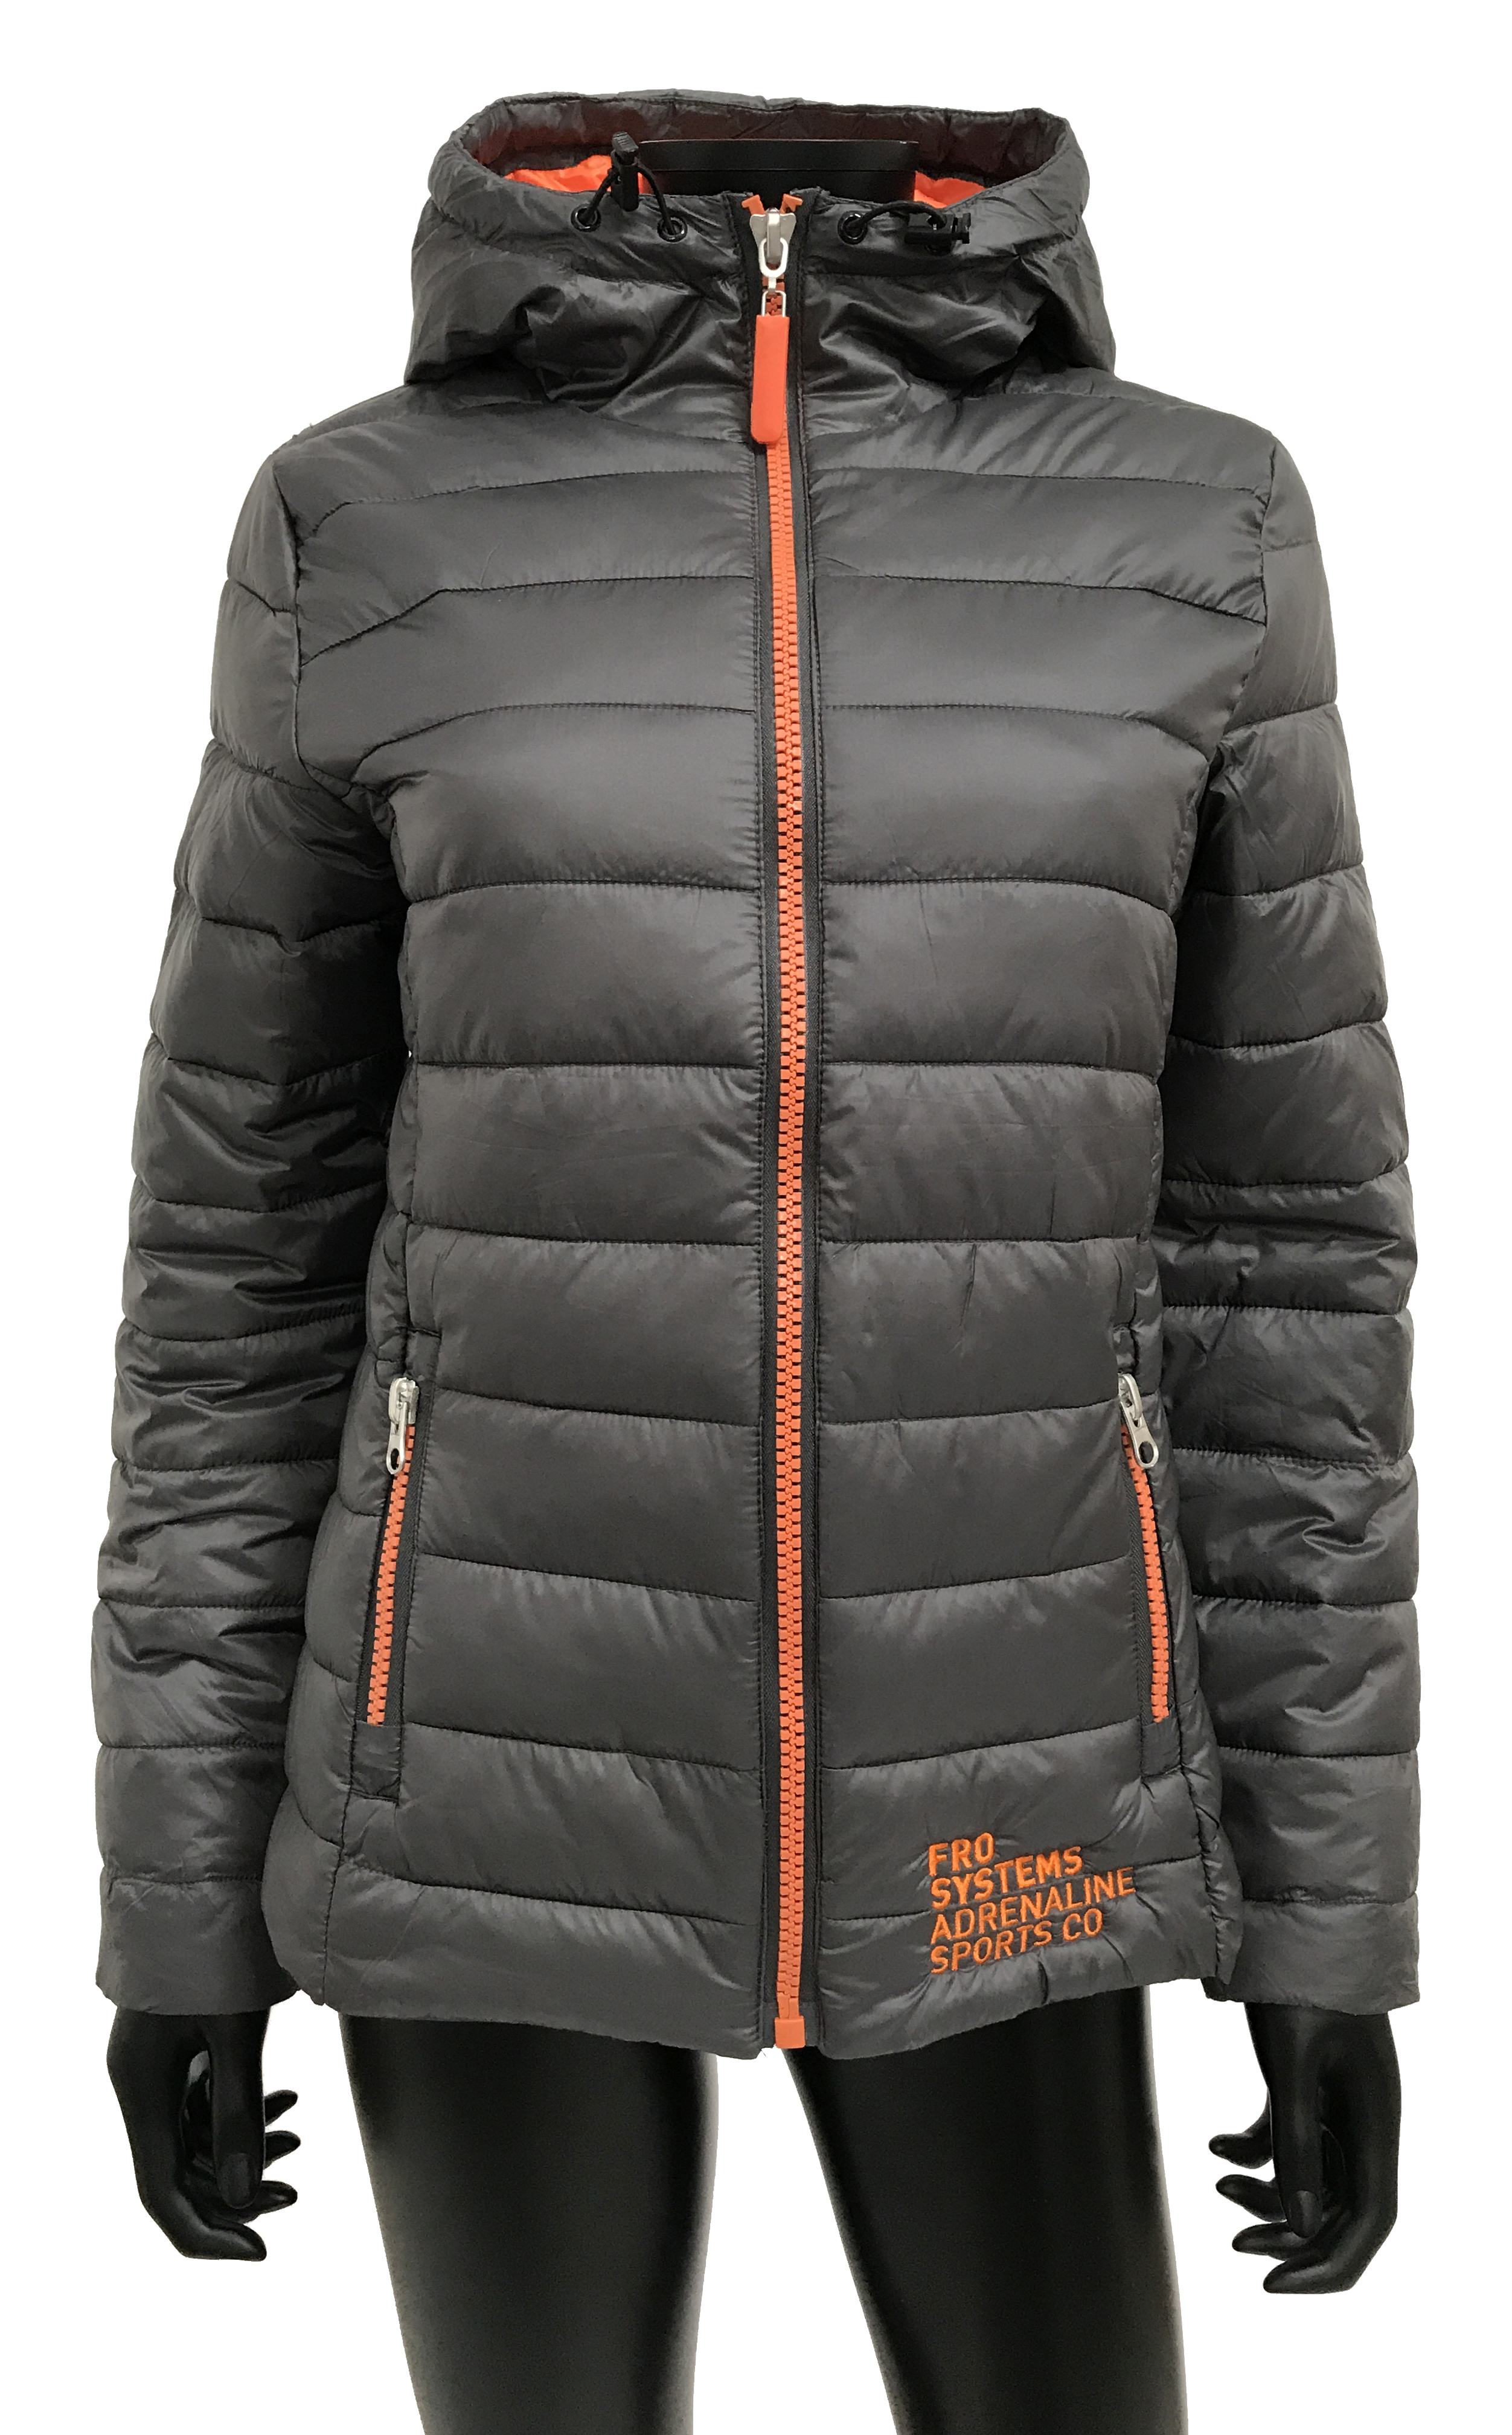 Chill Performance Padded jacket